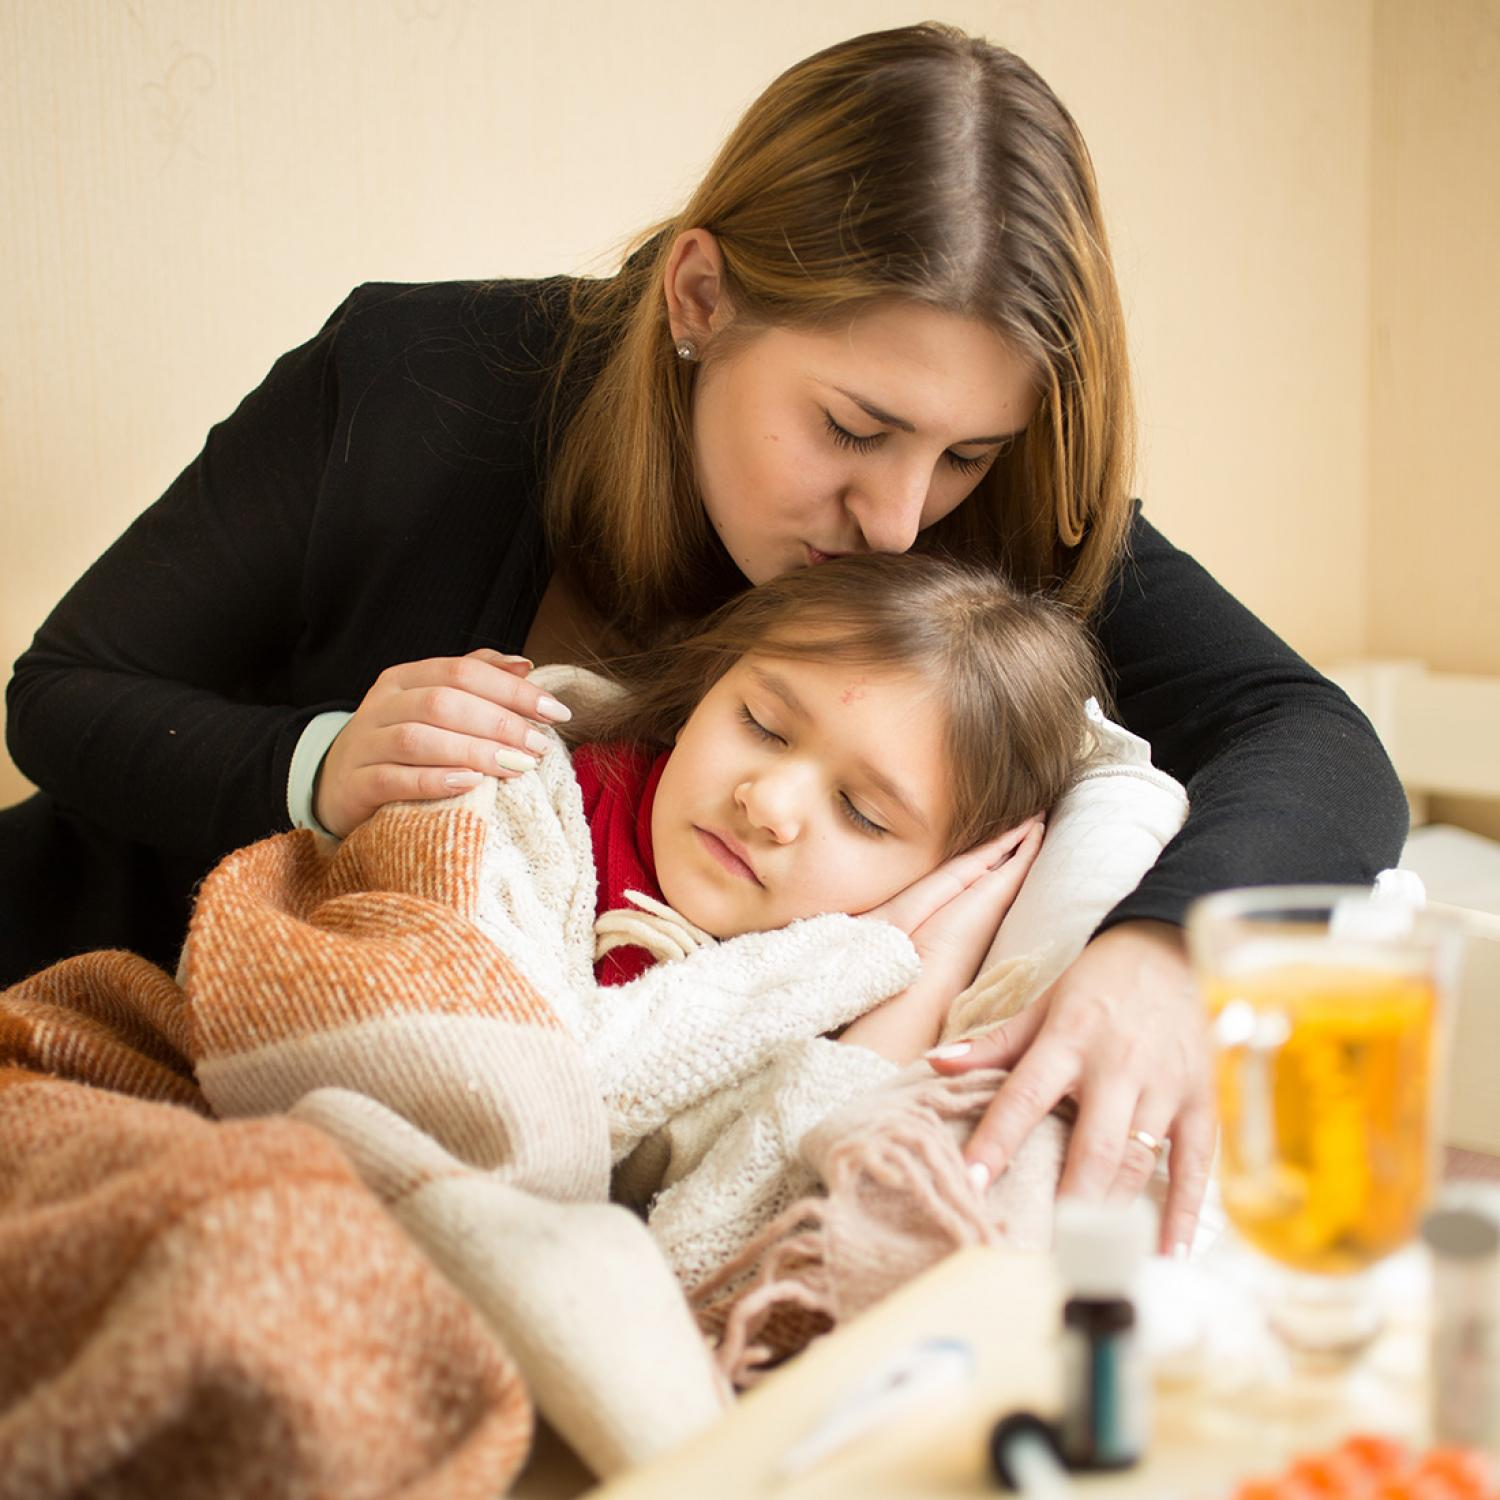 dating tips for teens and parents kids home health